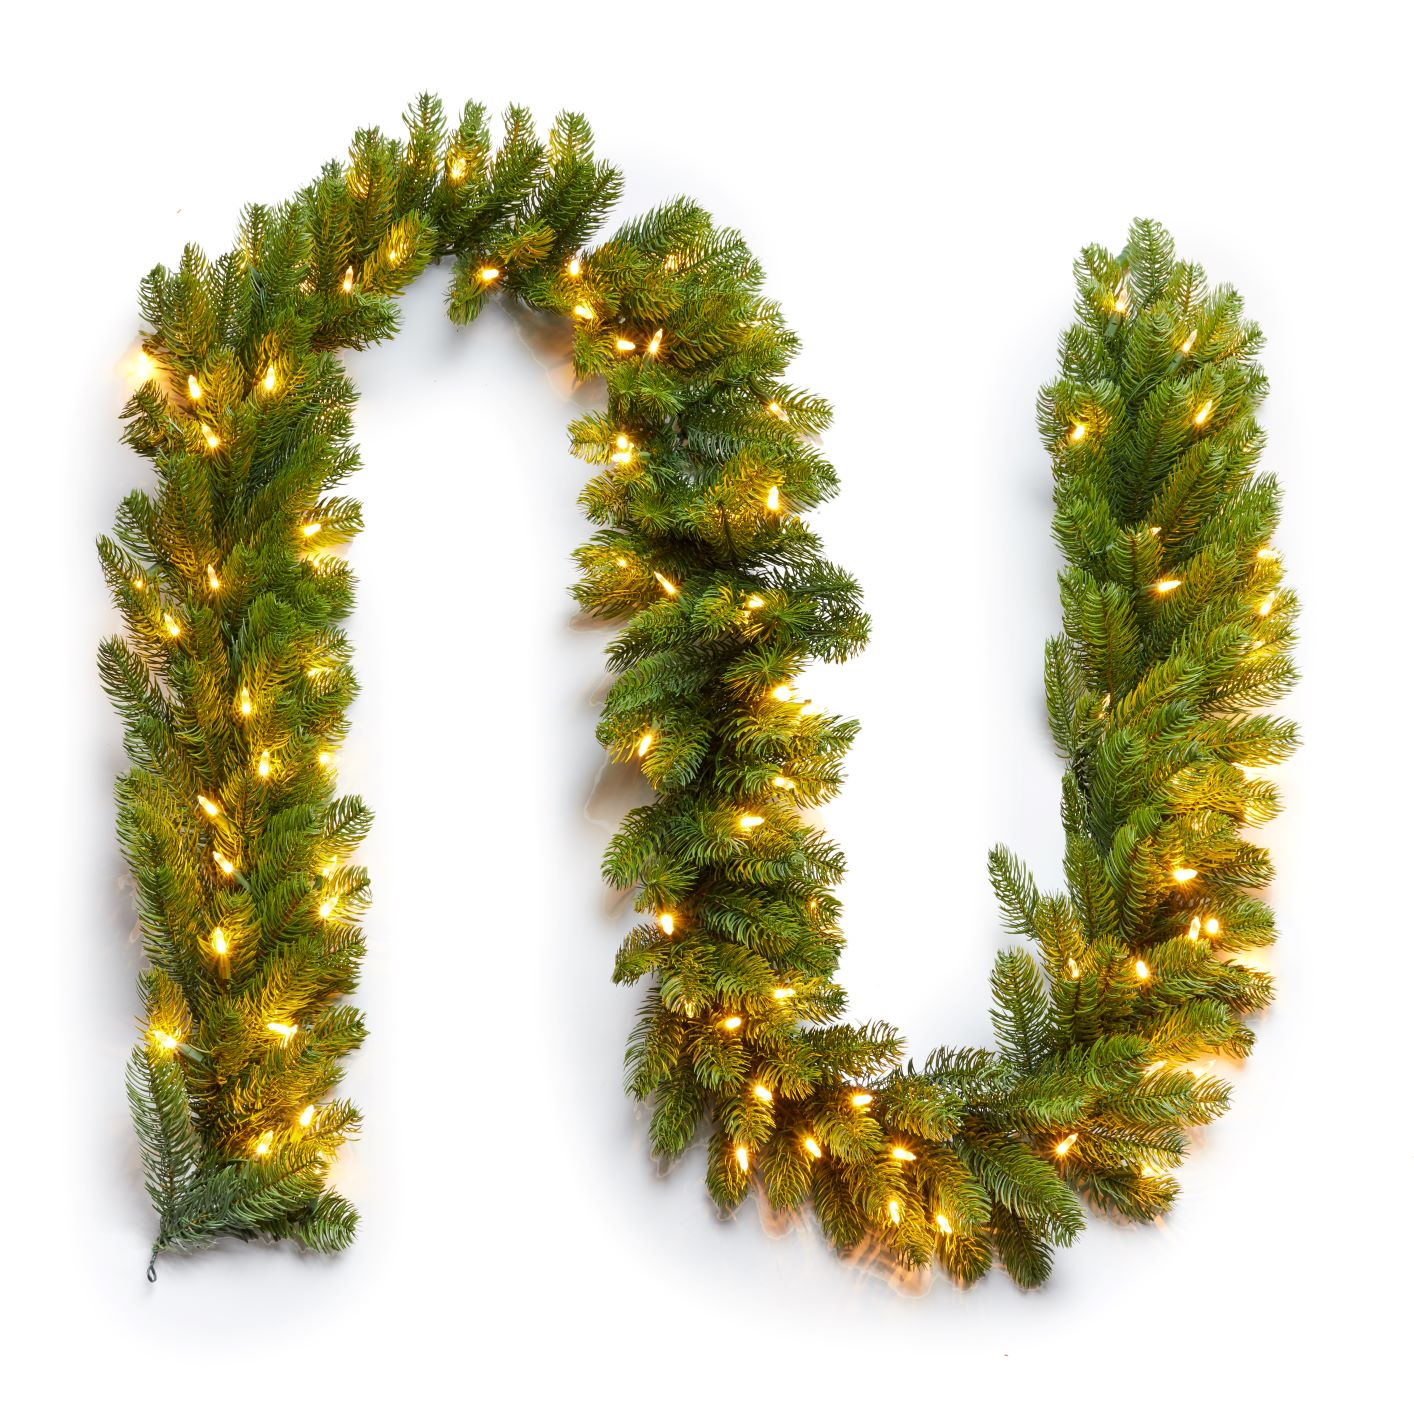 Artificial Christmas Garland.9 X 10 Royal Fir Garland With Warm White Led Lights Plug Operated